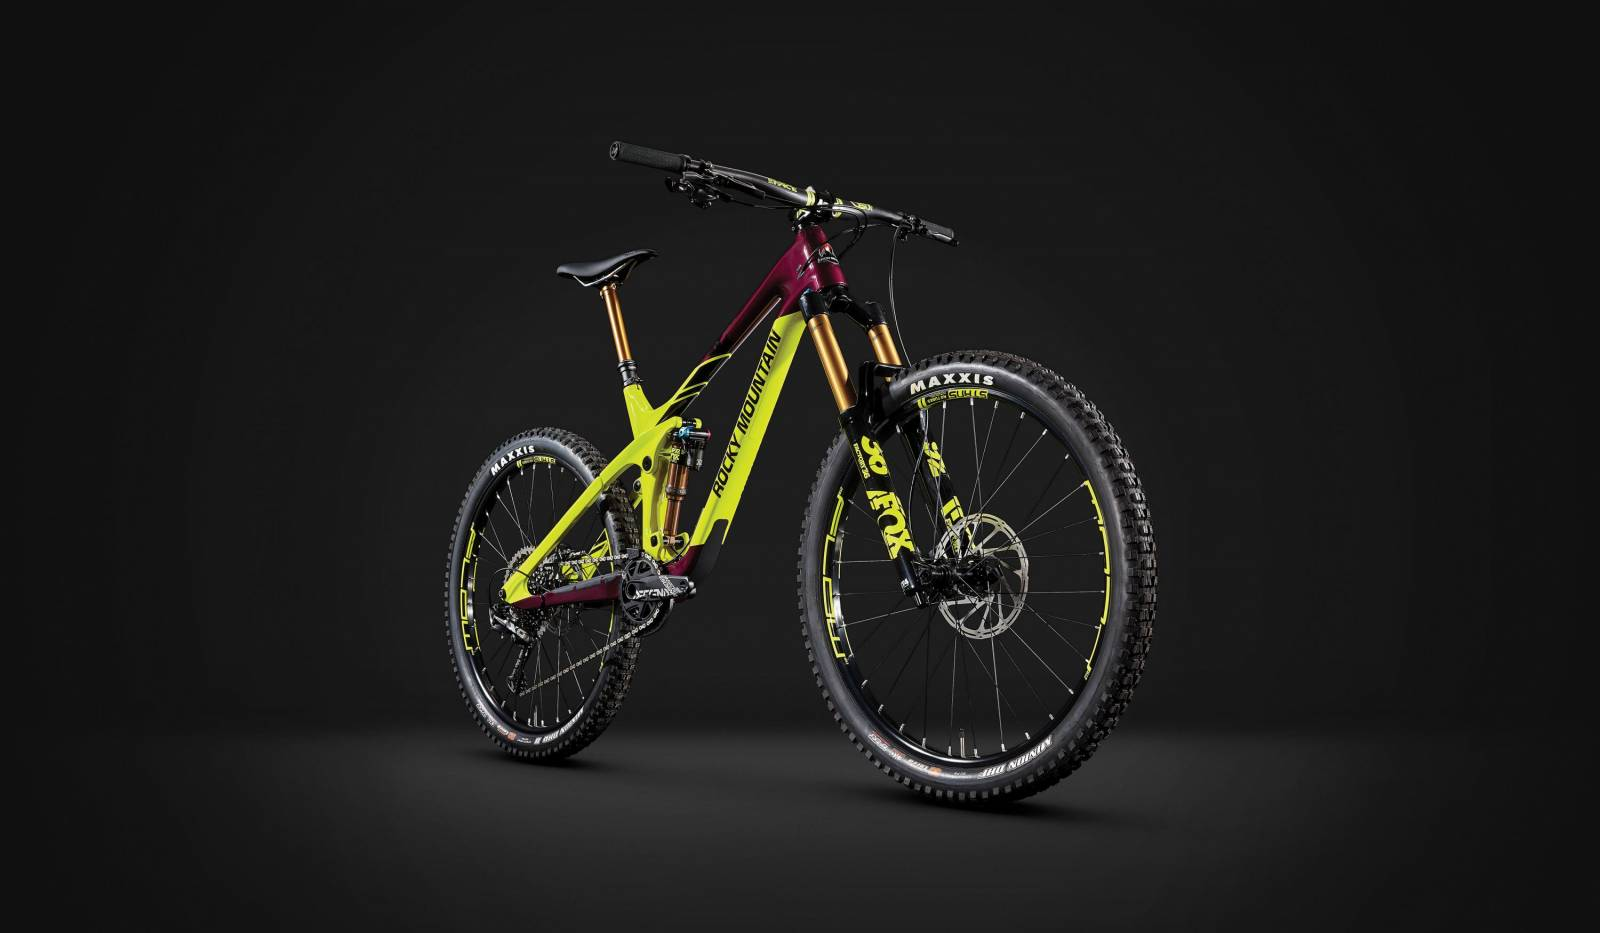 91714565281 Test ride our latest 2018 Rocky Mountain full suspension bikes! The  following models will be at the event below: